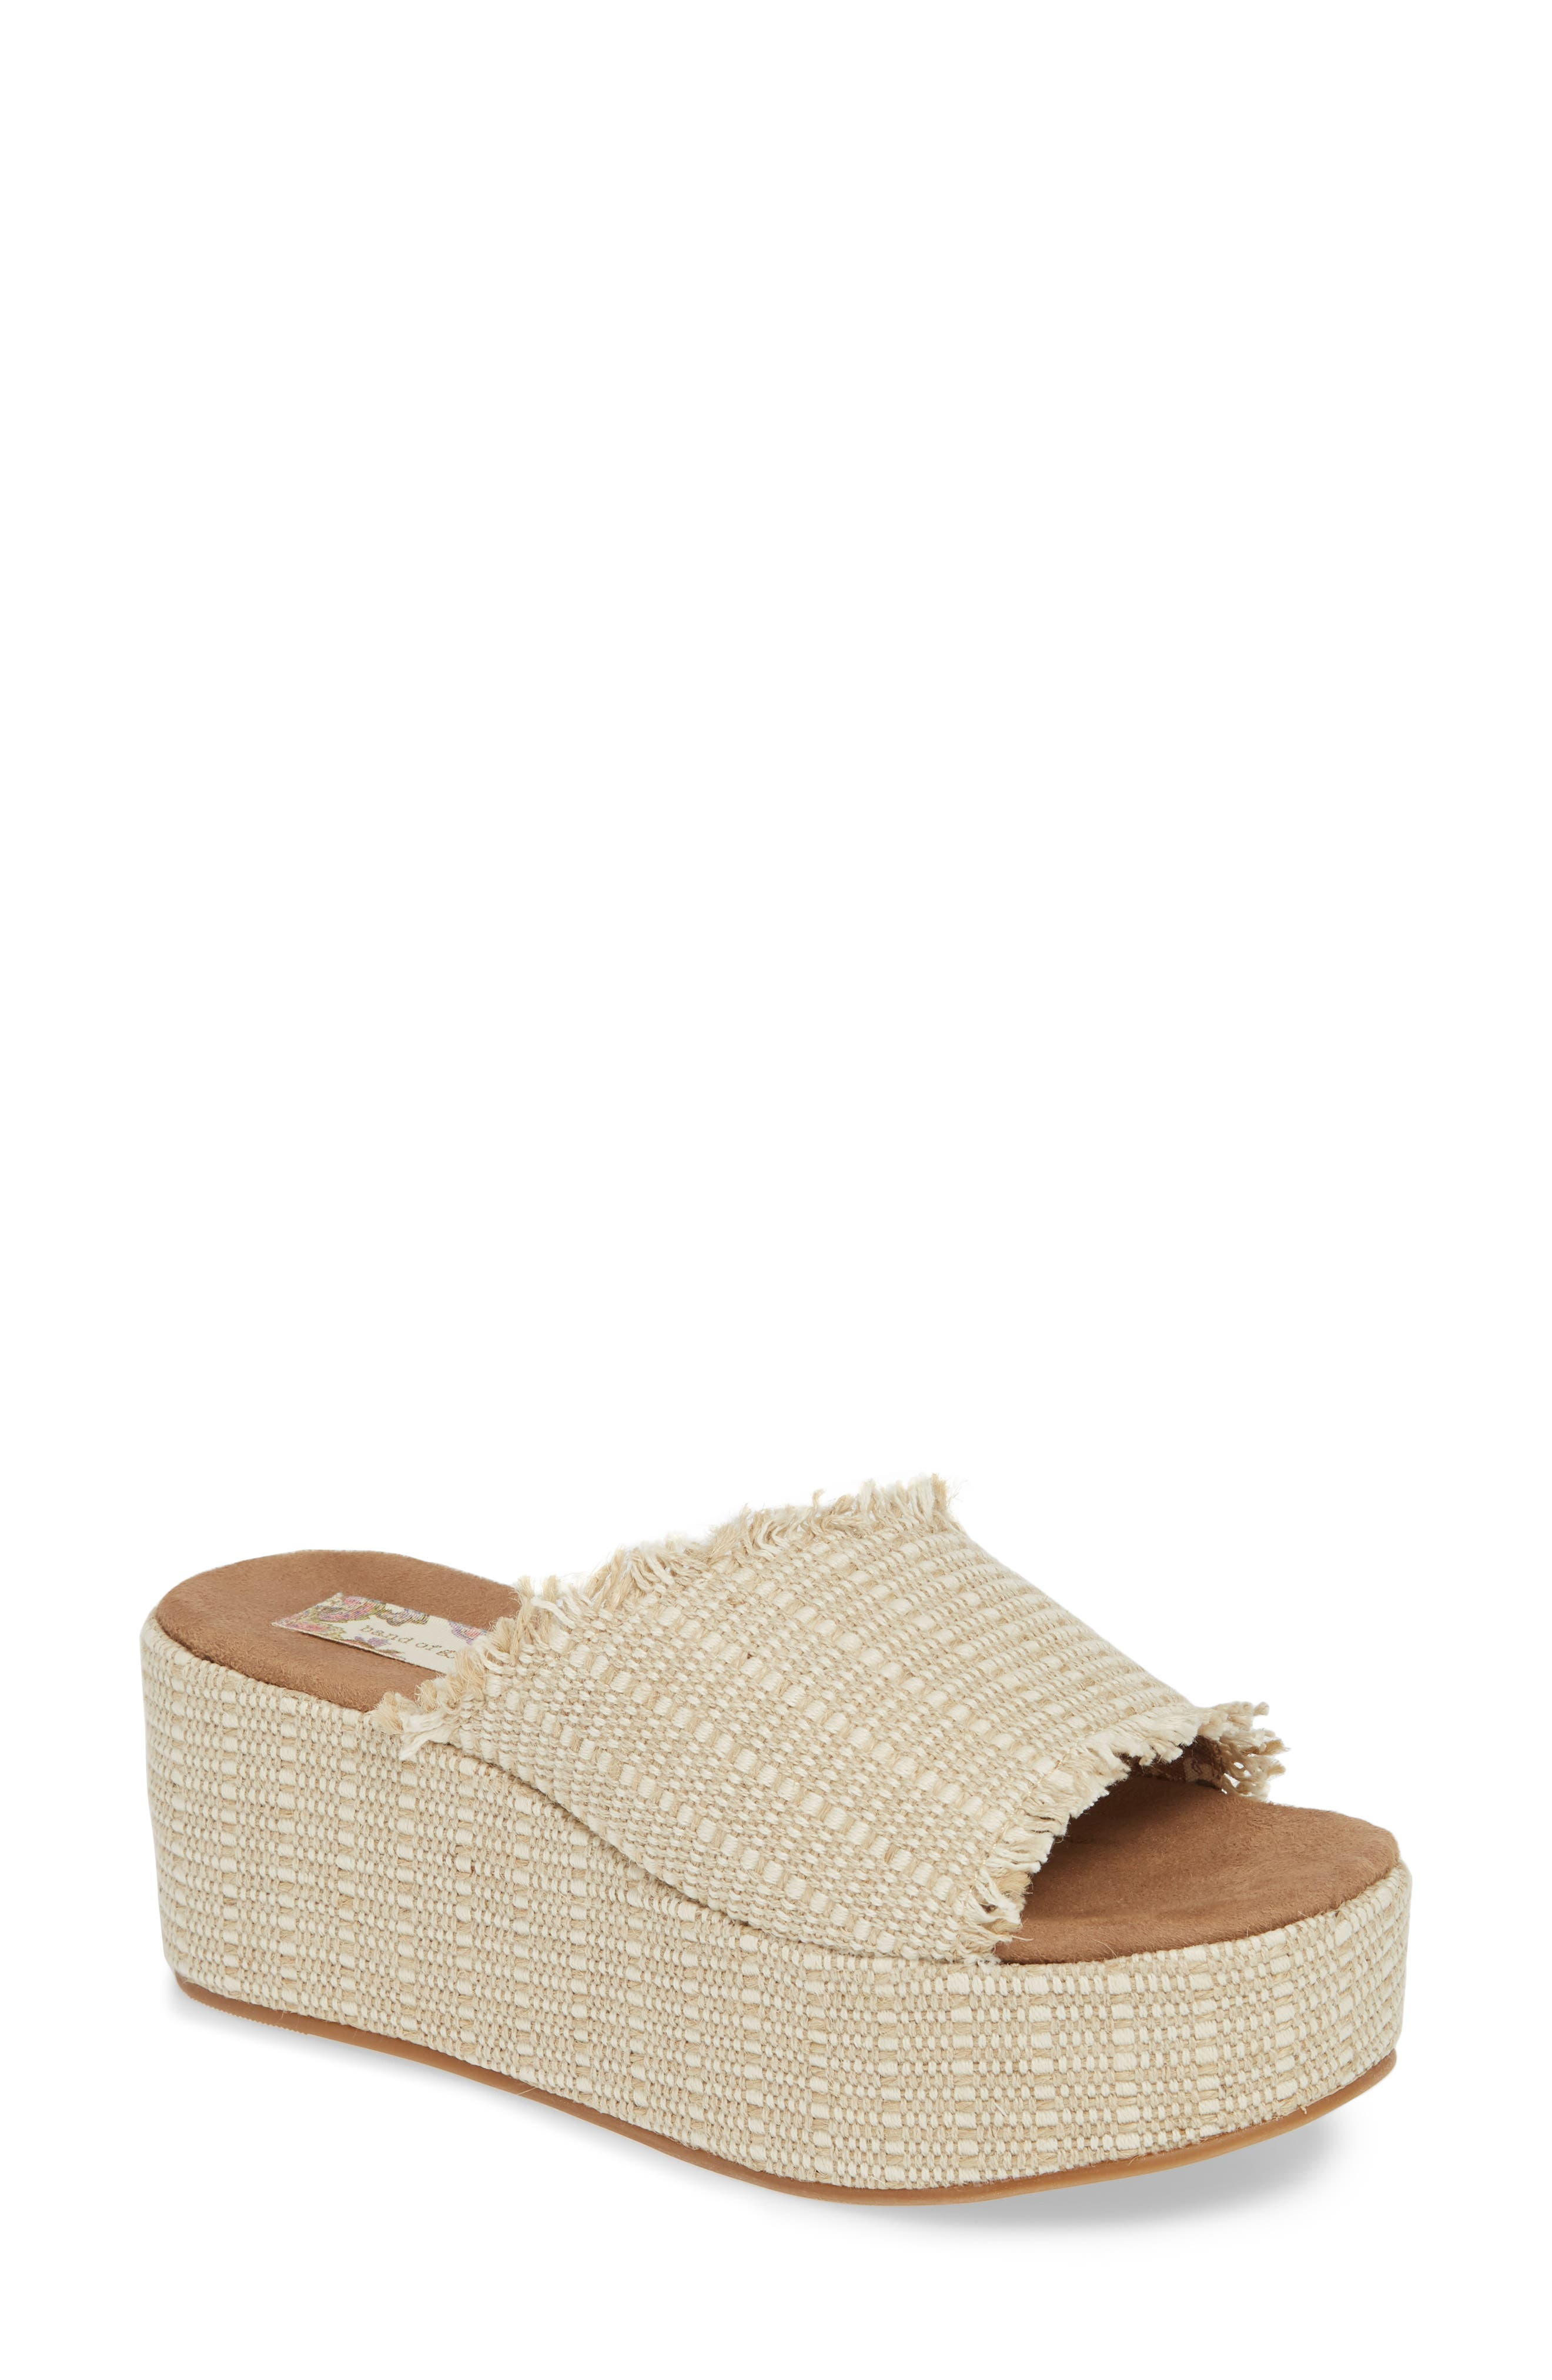 b56a136f8d6c Women's Band Of Gypsies Shoes | Nordstrom